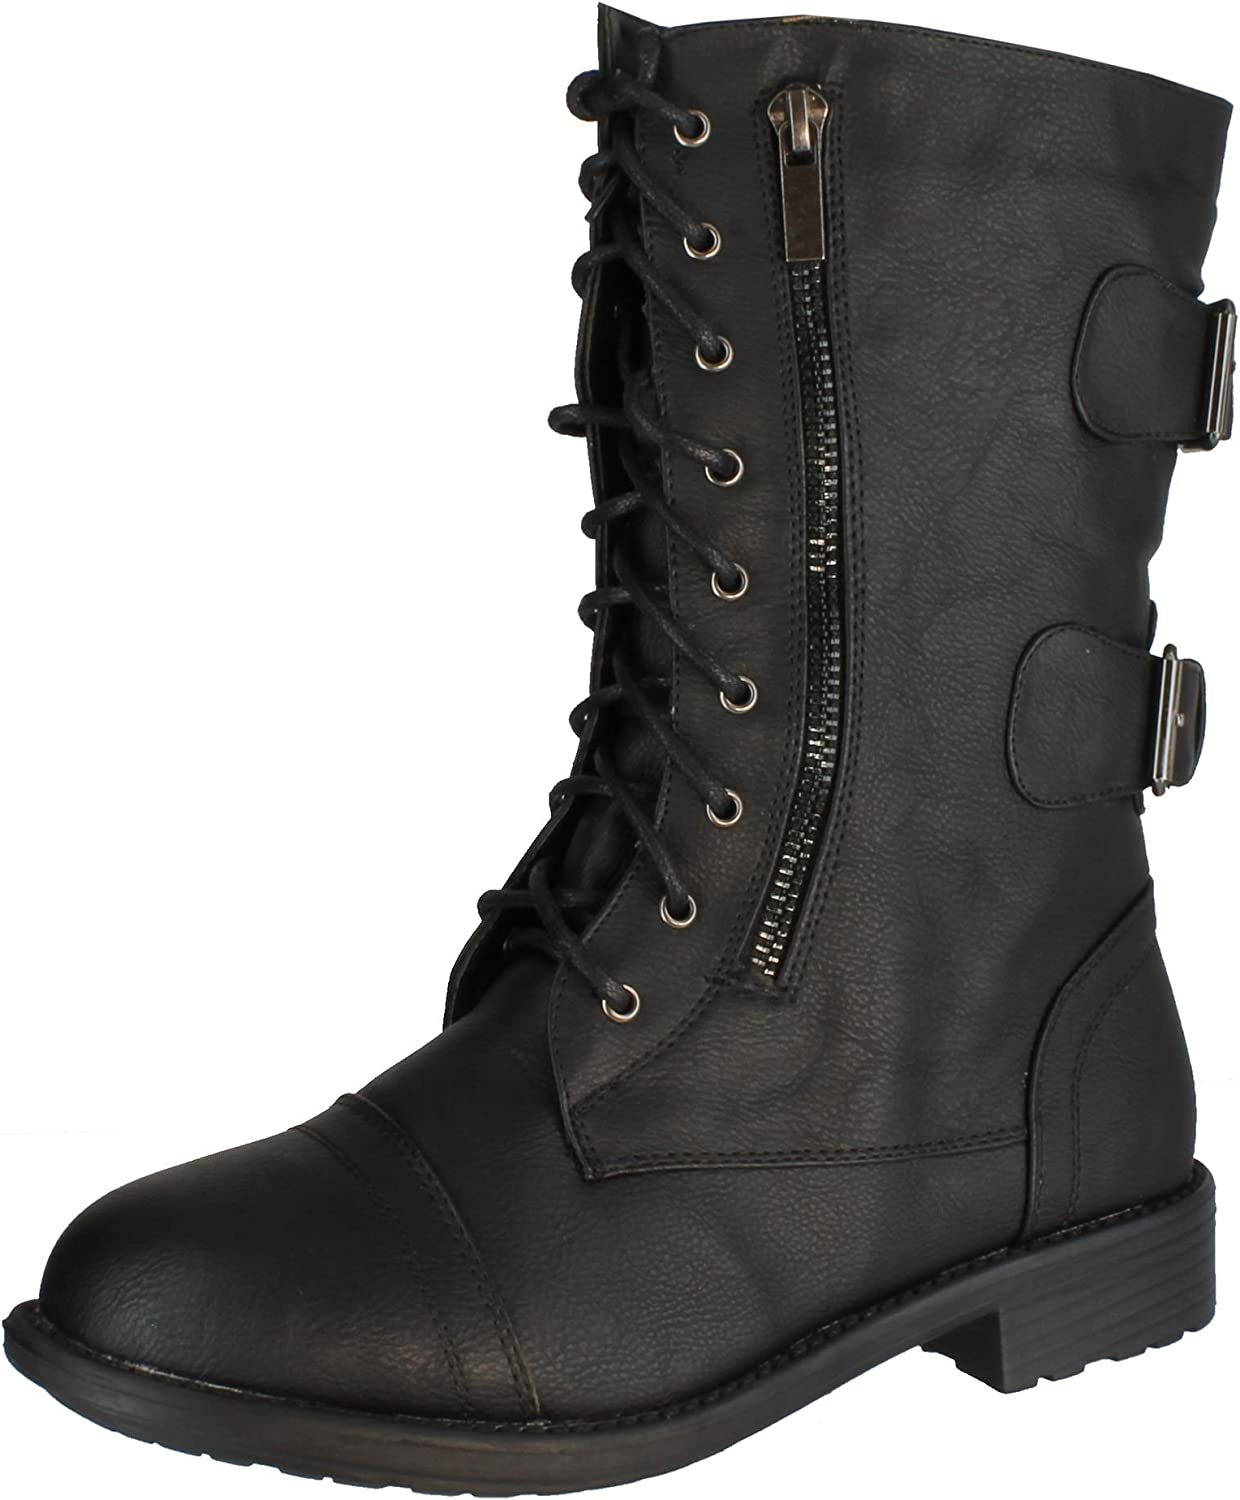 TOP Moda Women'S Pack-72 Military Lace Up Combat Boot